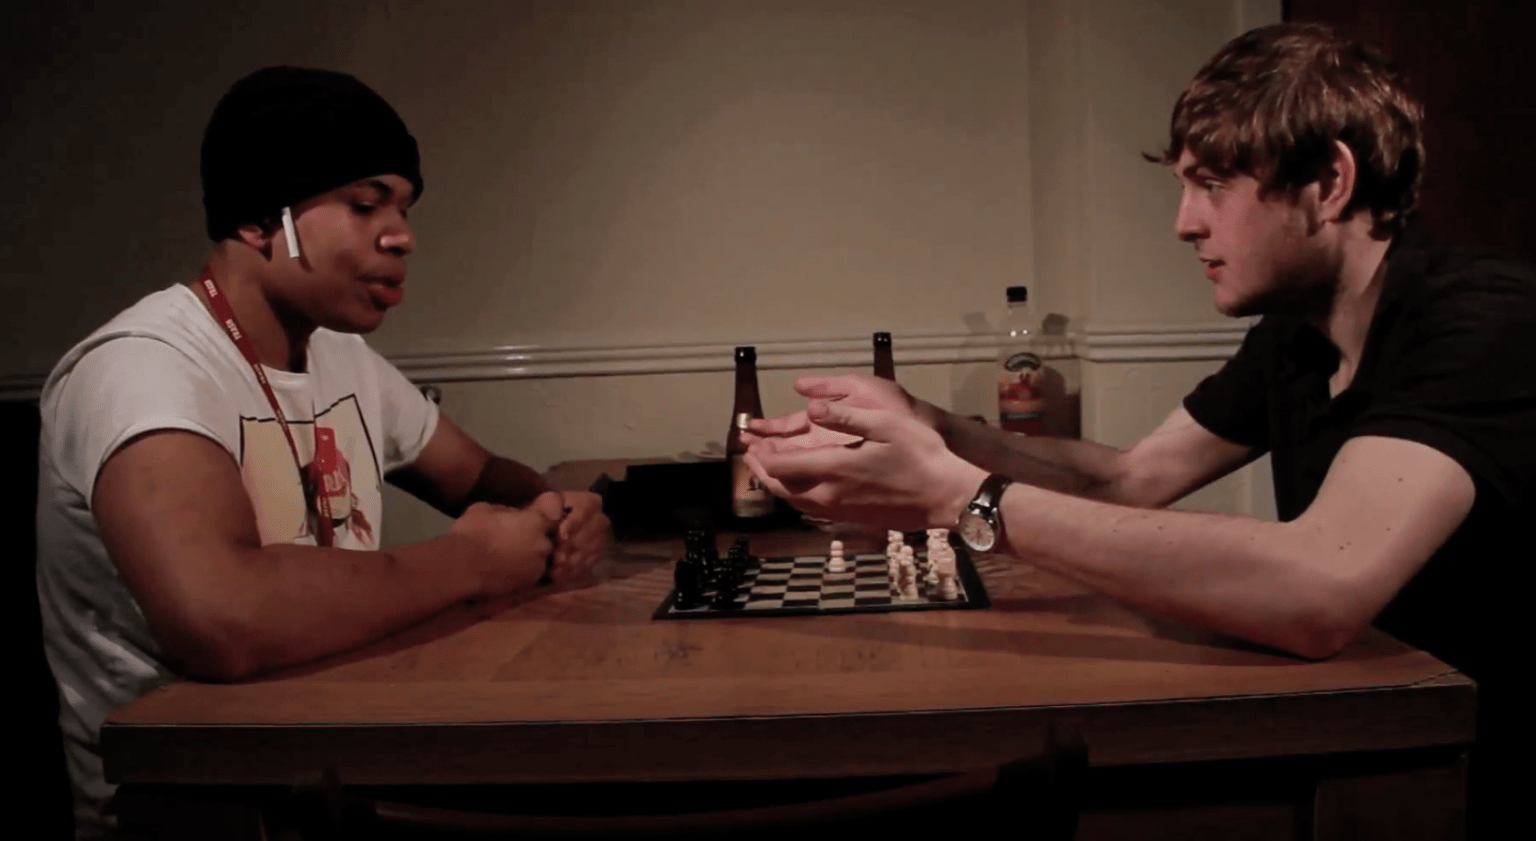 The game of Chess is now apparently racist. You can't even make this stuff up anymore. (Op-ed)